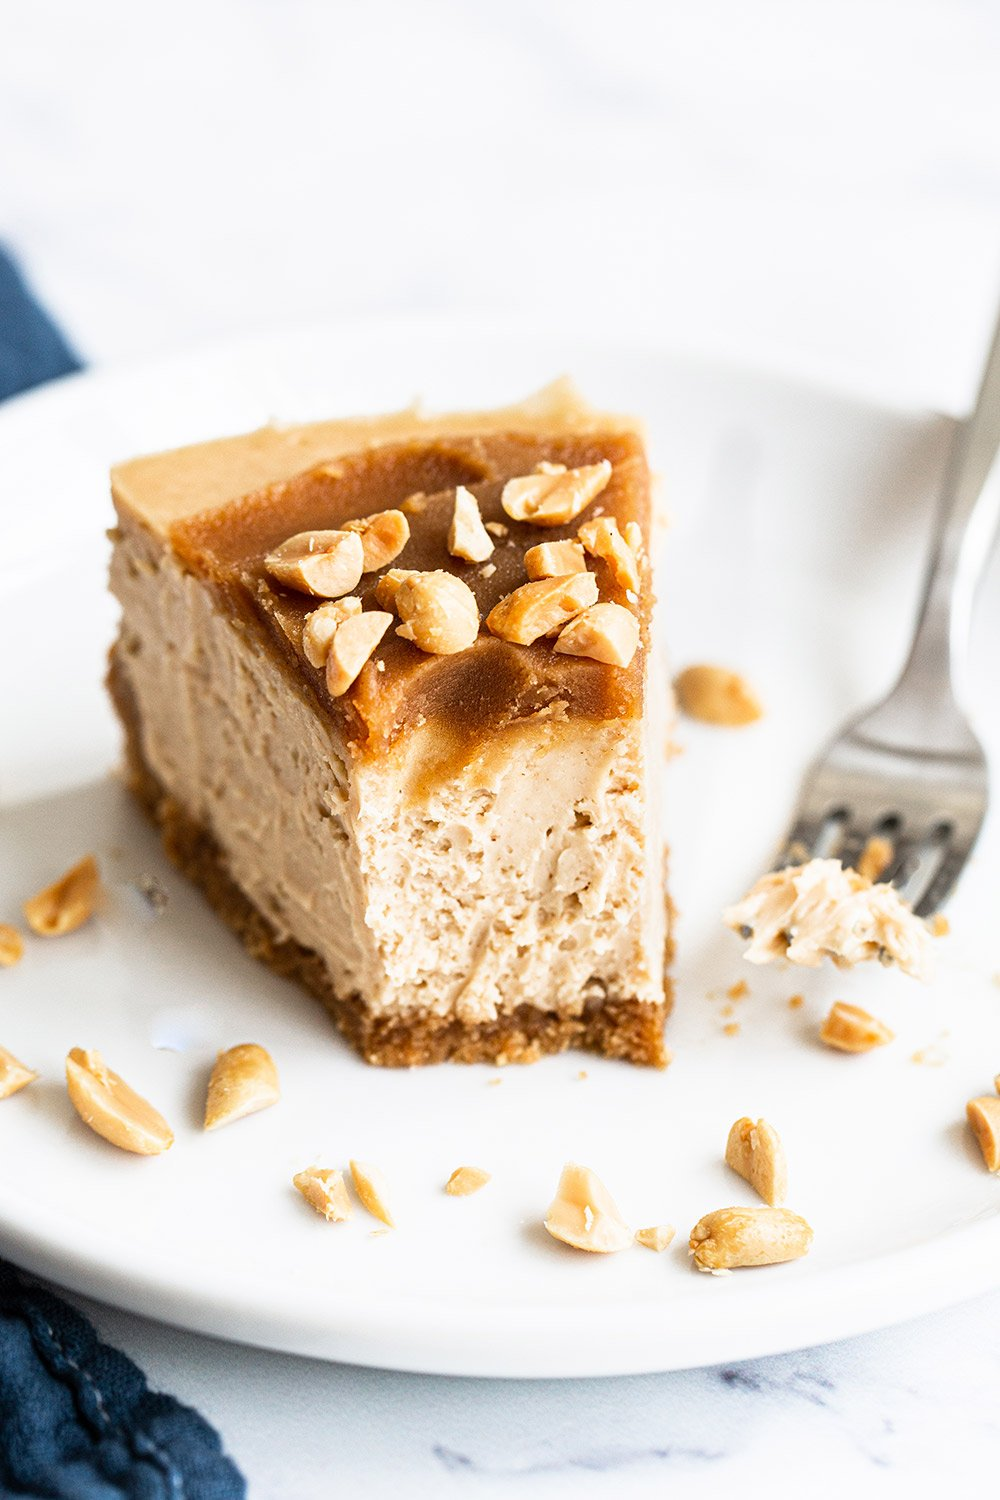 bite taken out of ultimate peanut butter cheesecake recipe